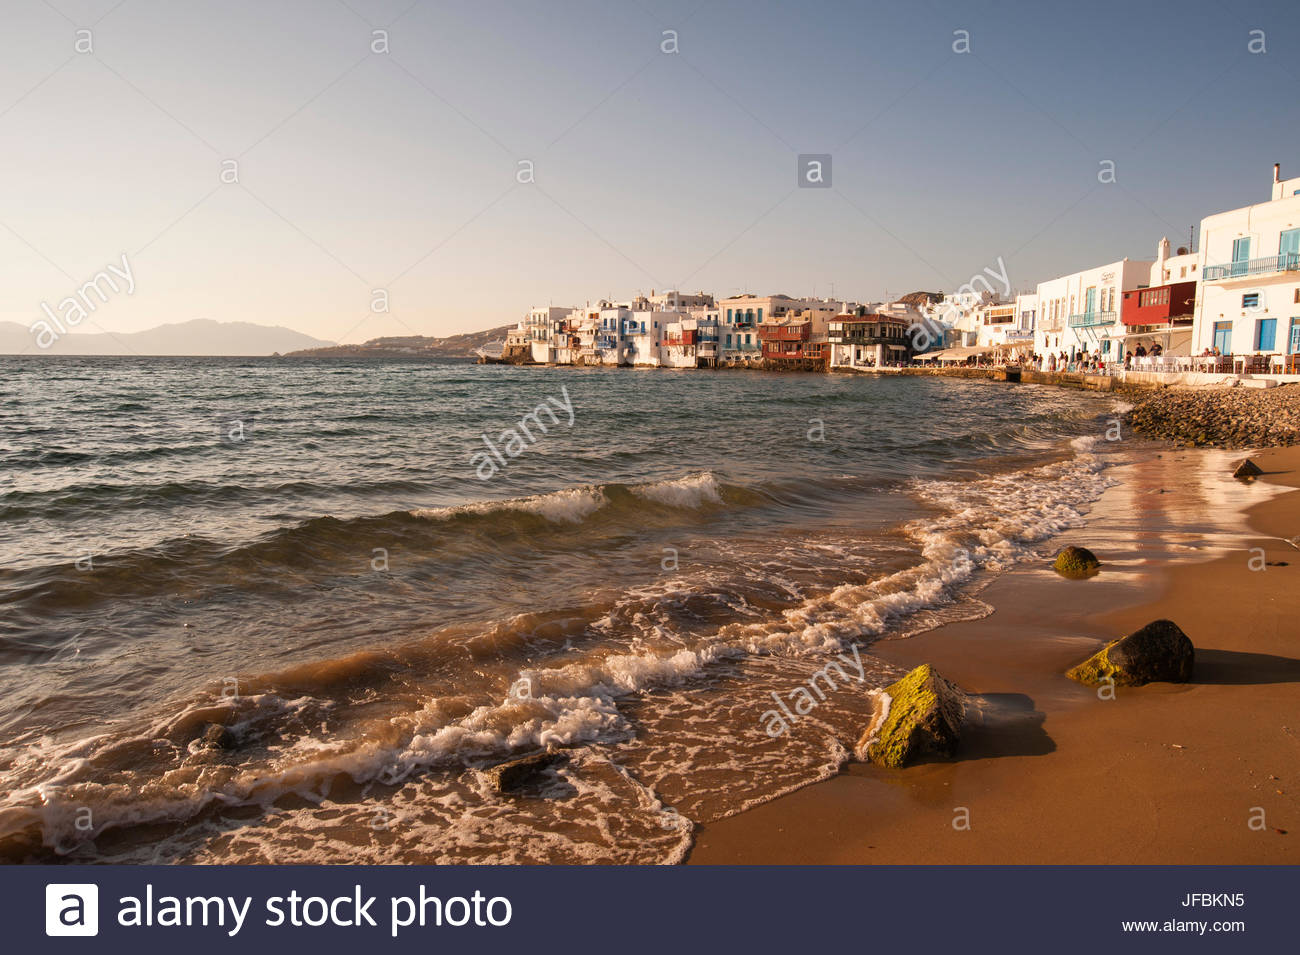 A shoreline view of the Little Venice neighborhood and gentle surf. - Stock Image